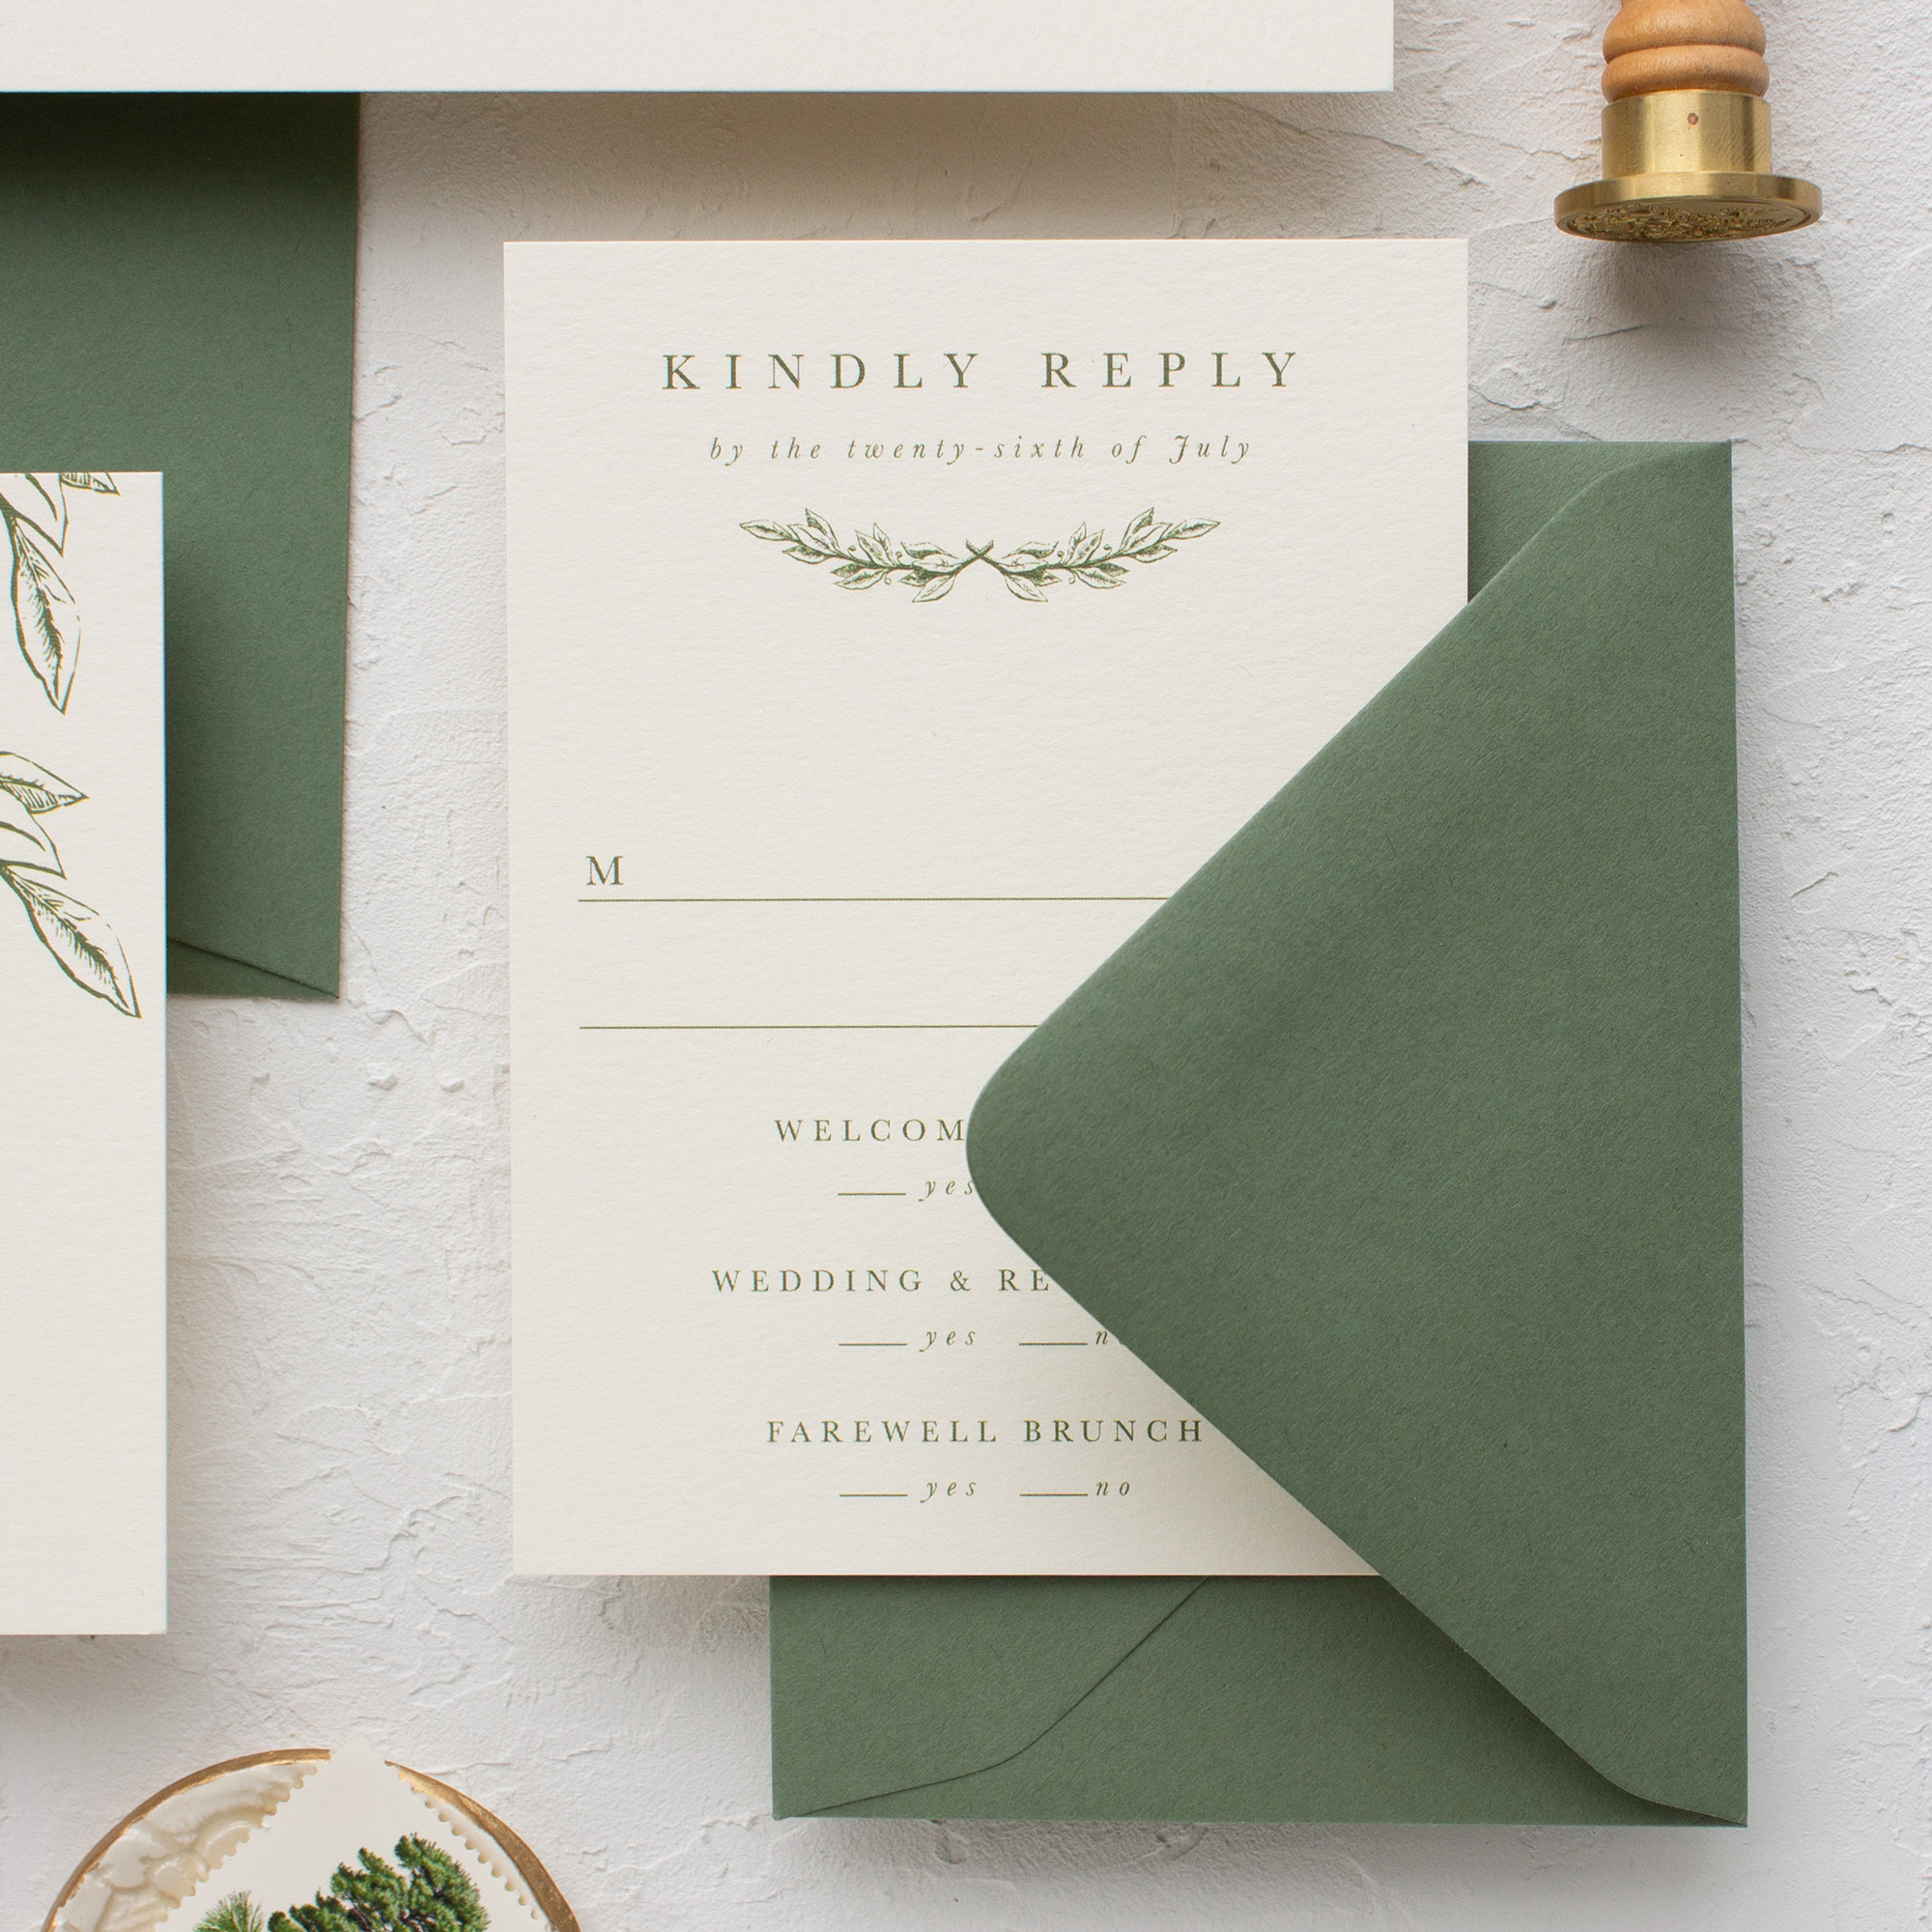 rsvp card with weekend events